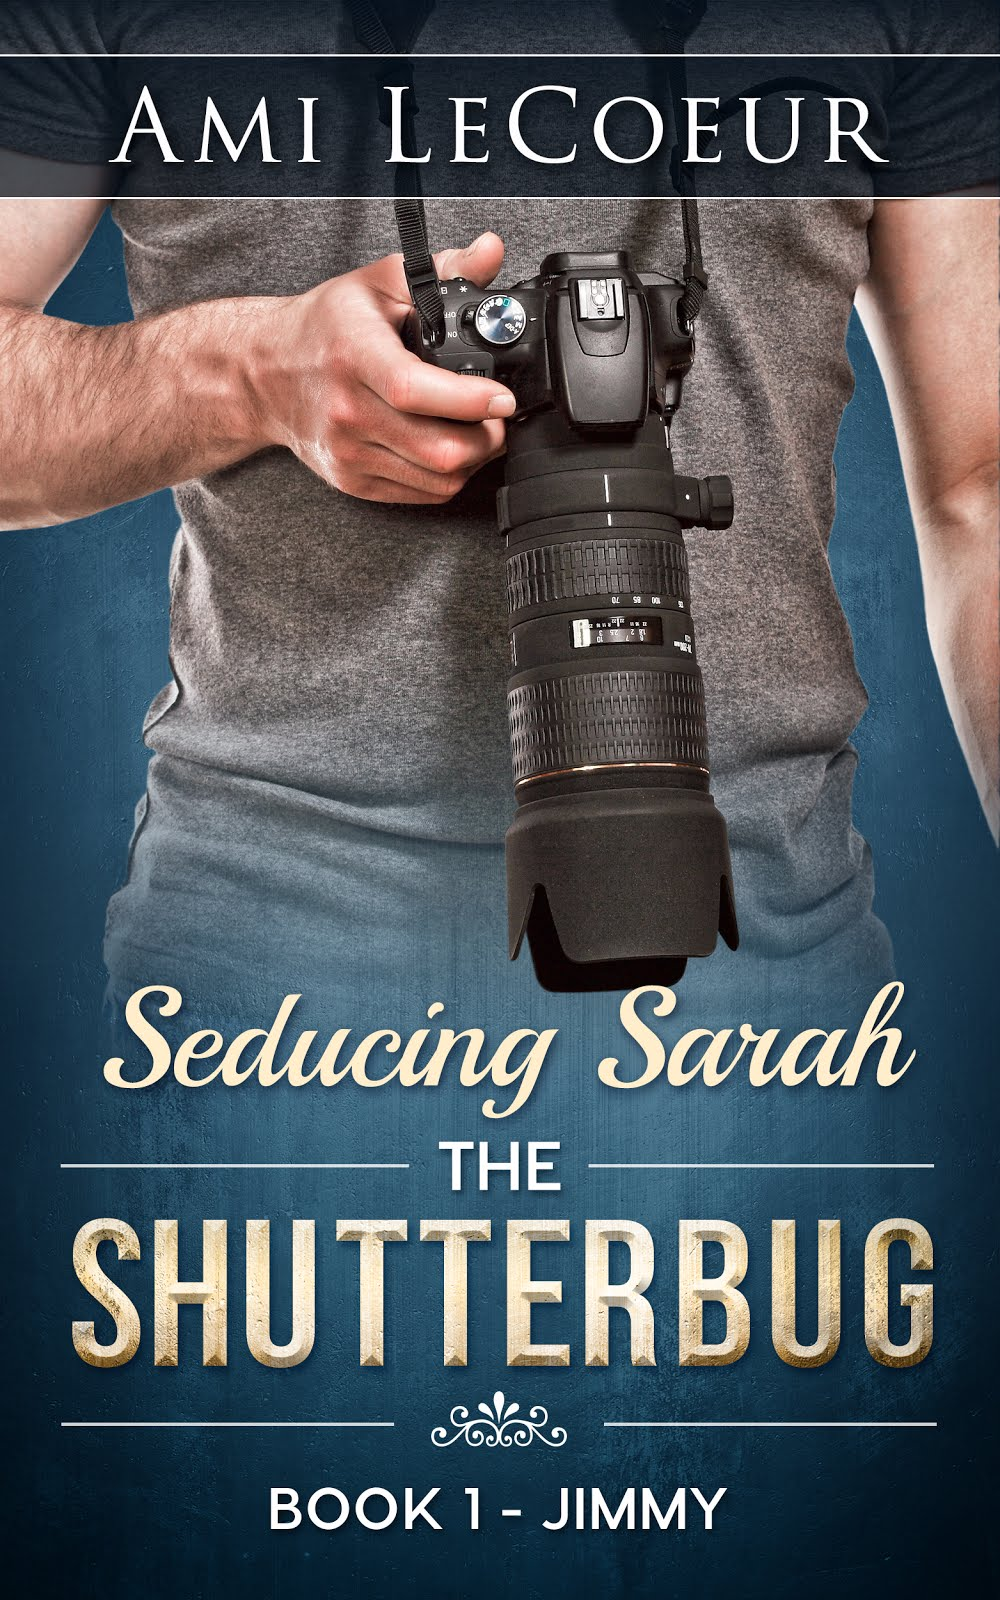 Seducing Sarah Book 1 - The Shutterbug: Jimmy